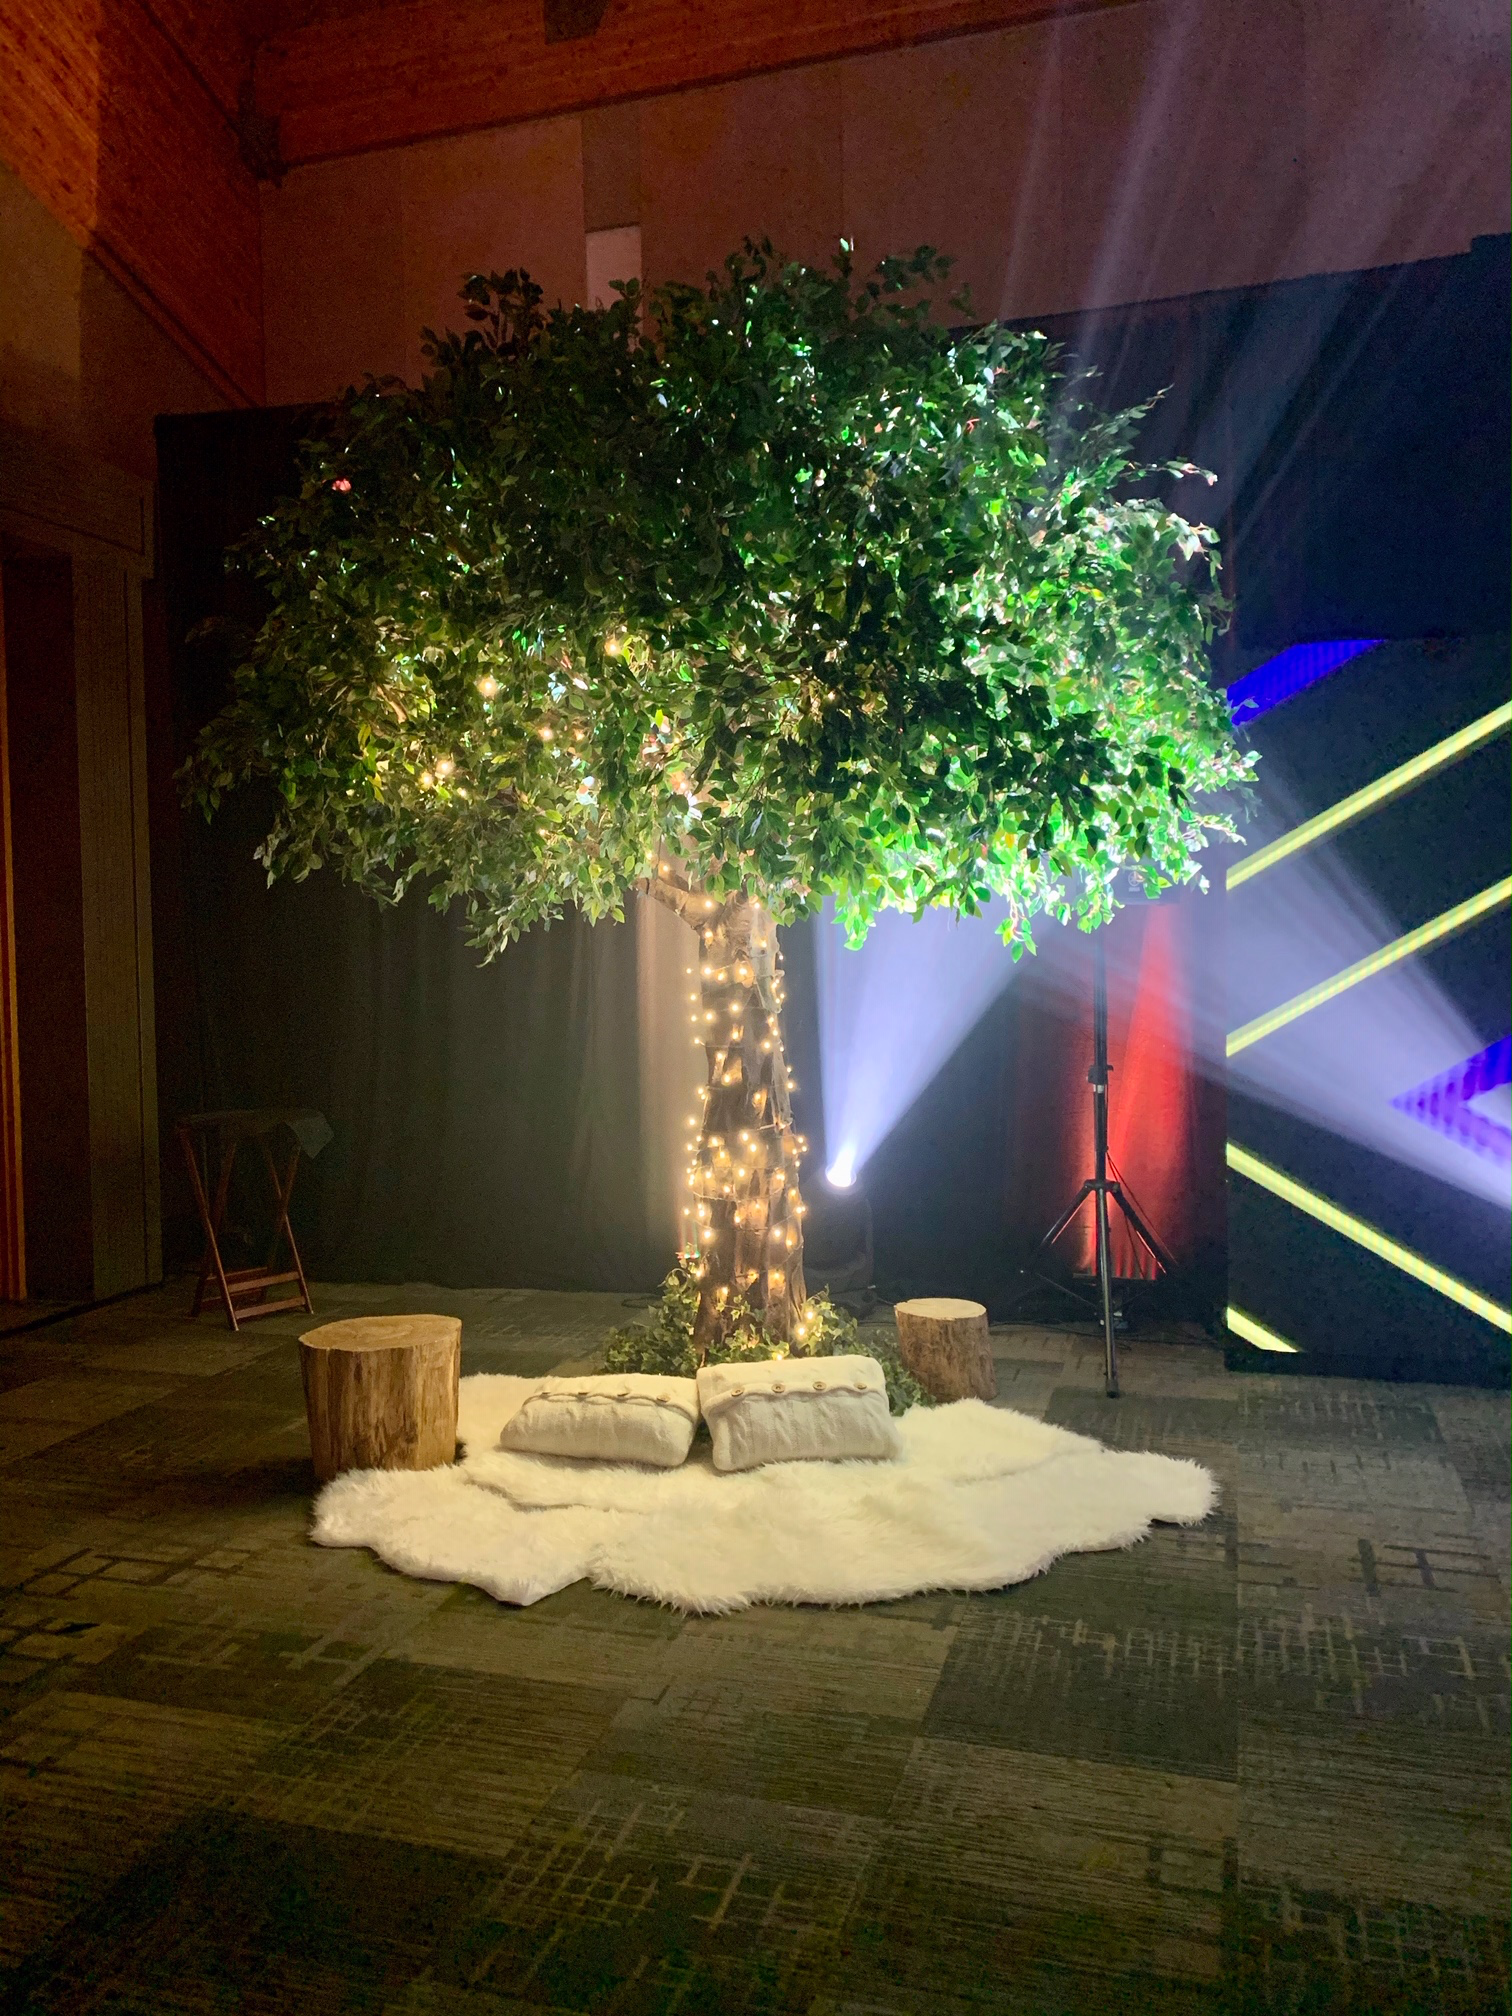 Canopy ficus tree with added lights and elevated park and picnic decor underneath the tree